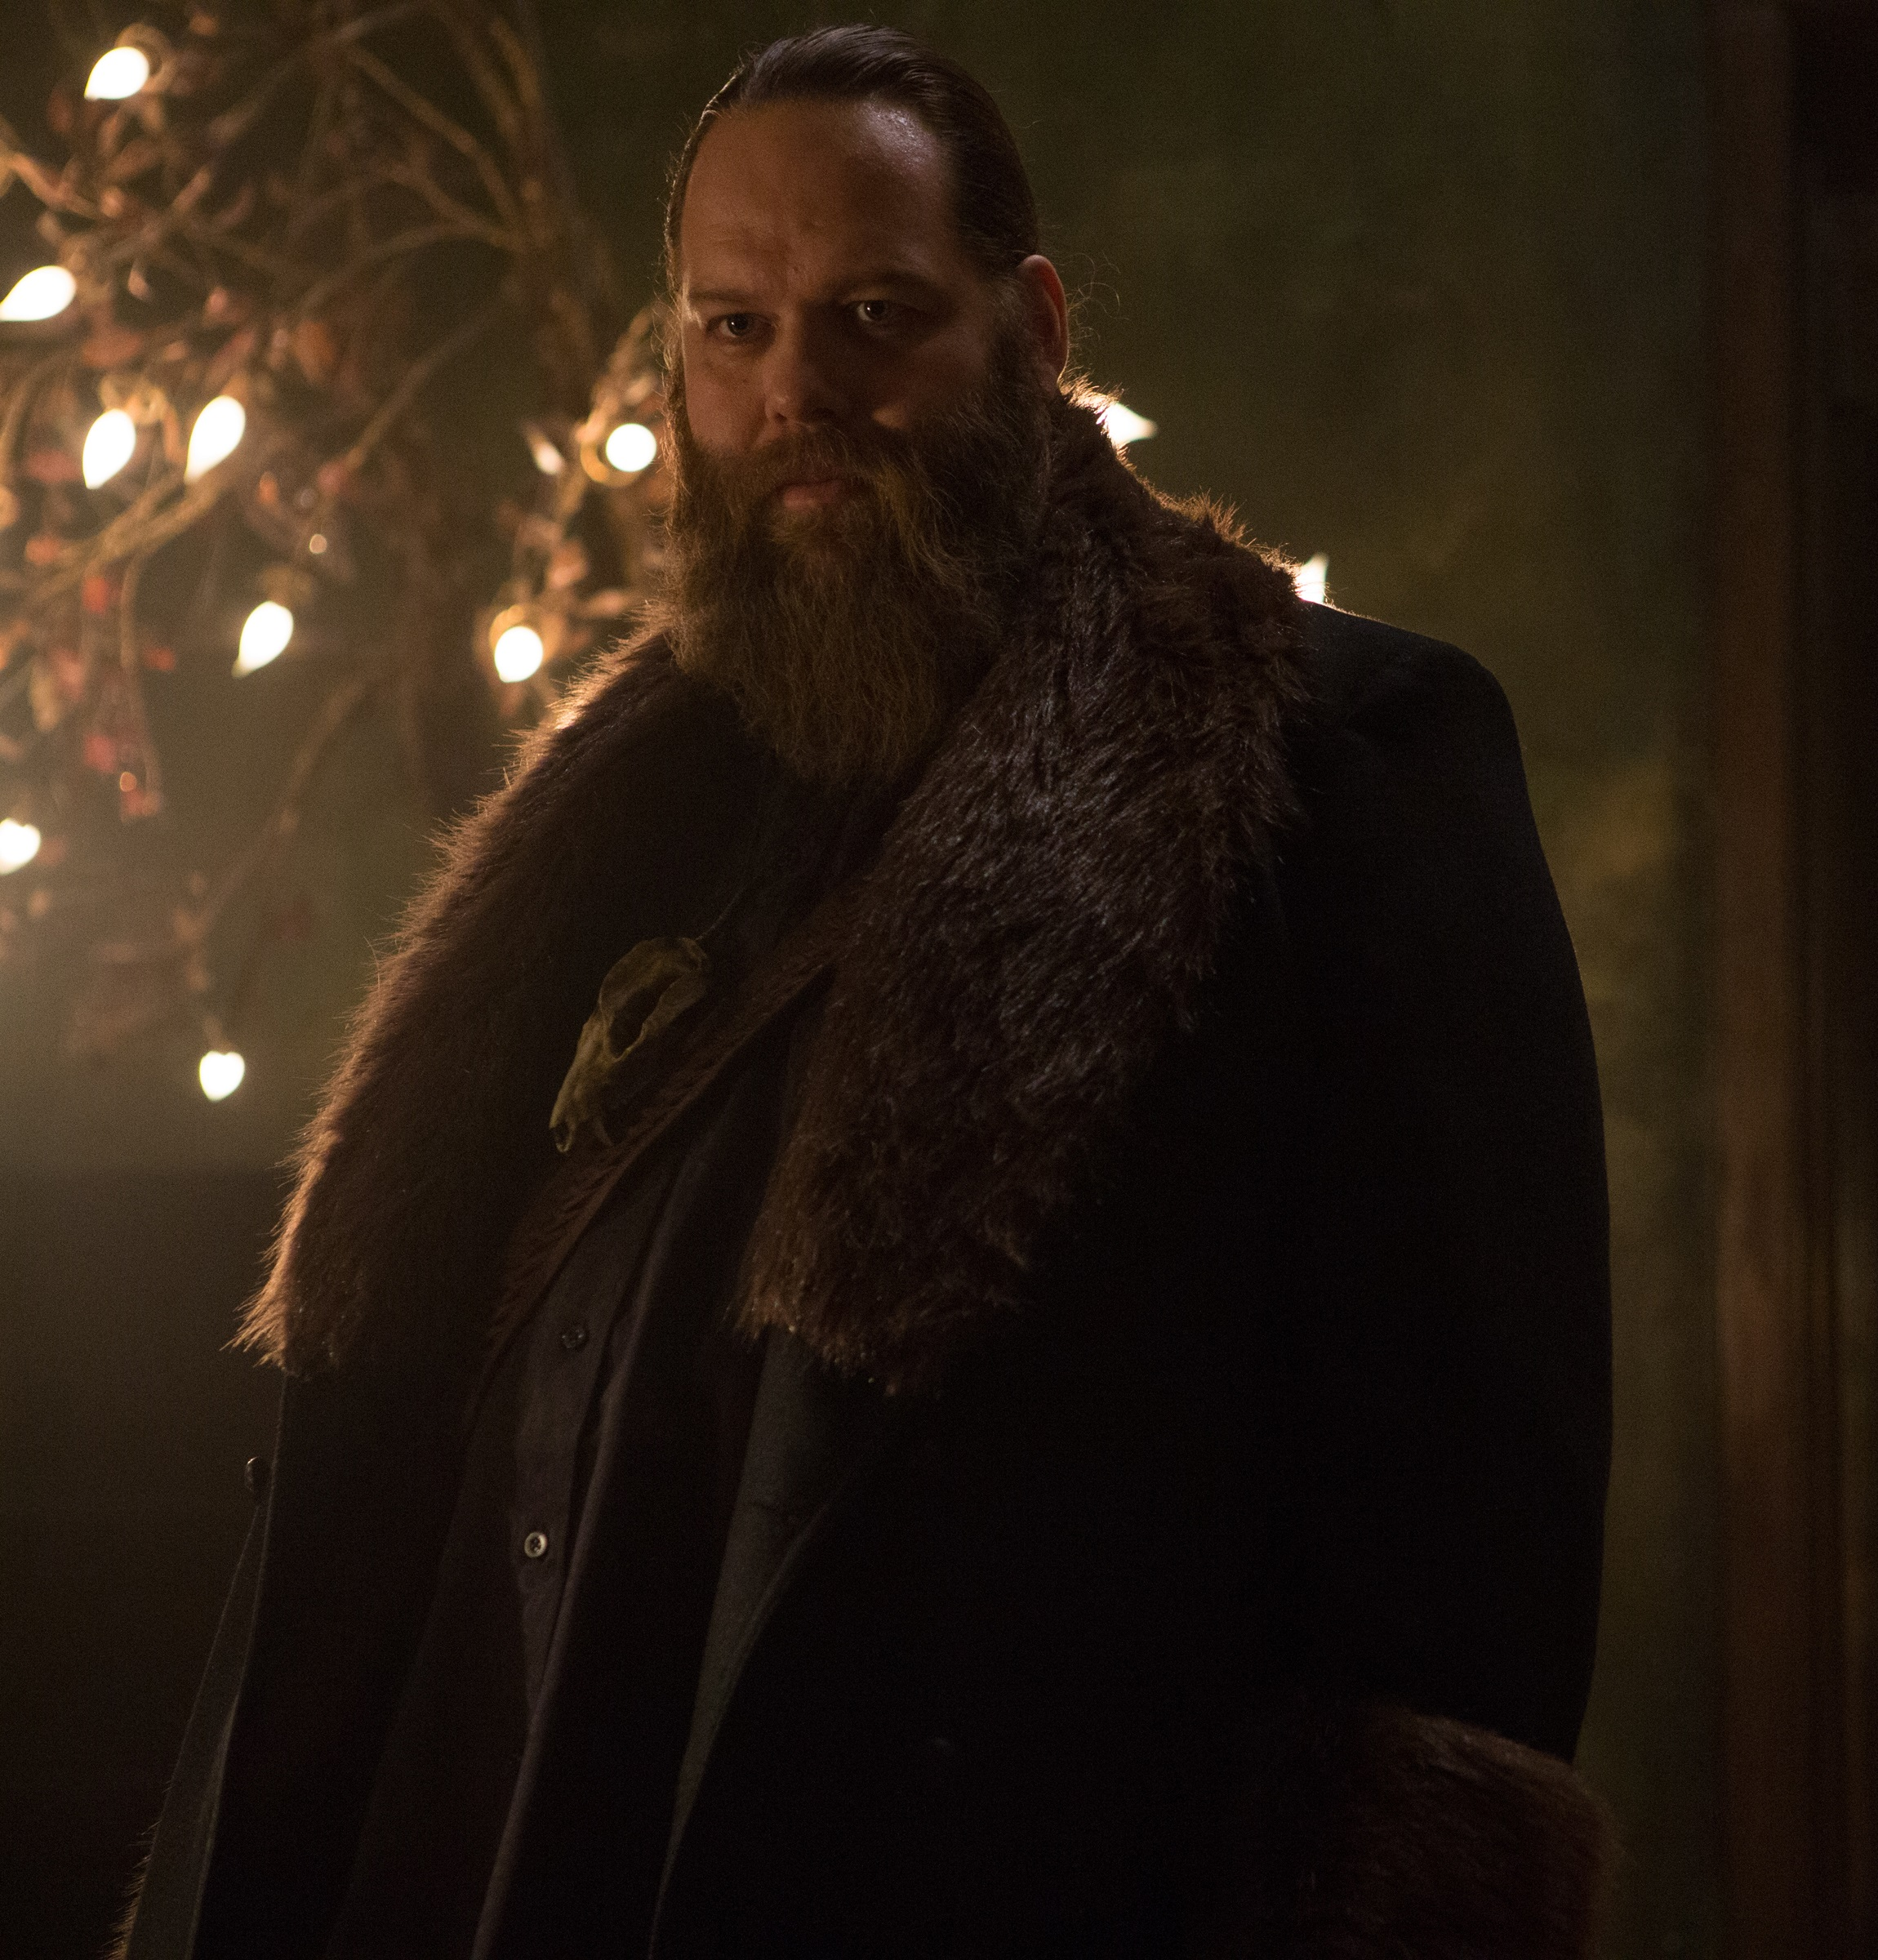 Belial (The Last Witch Hunter)